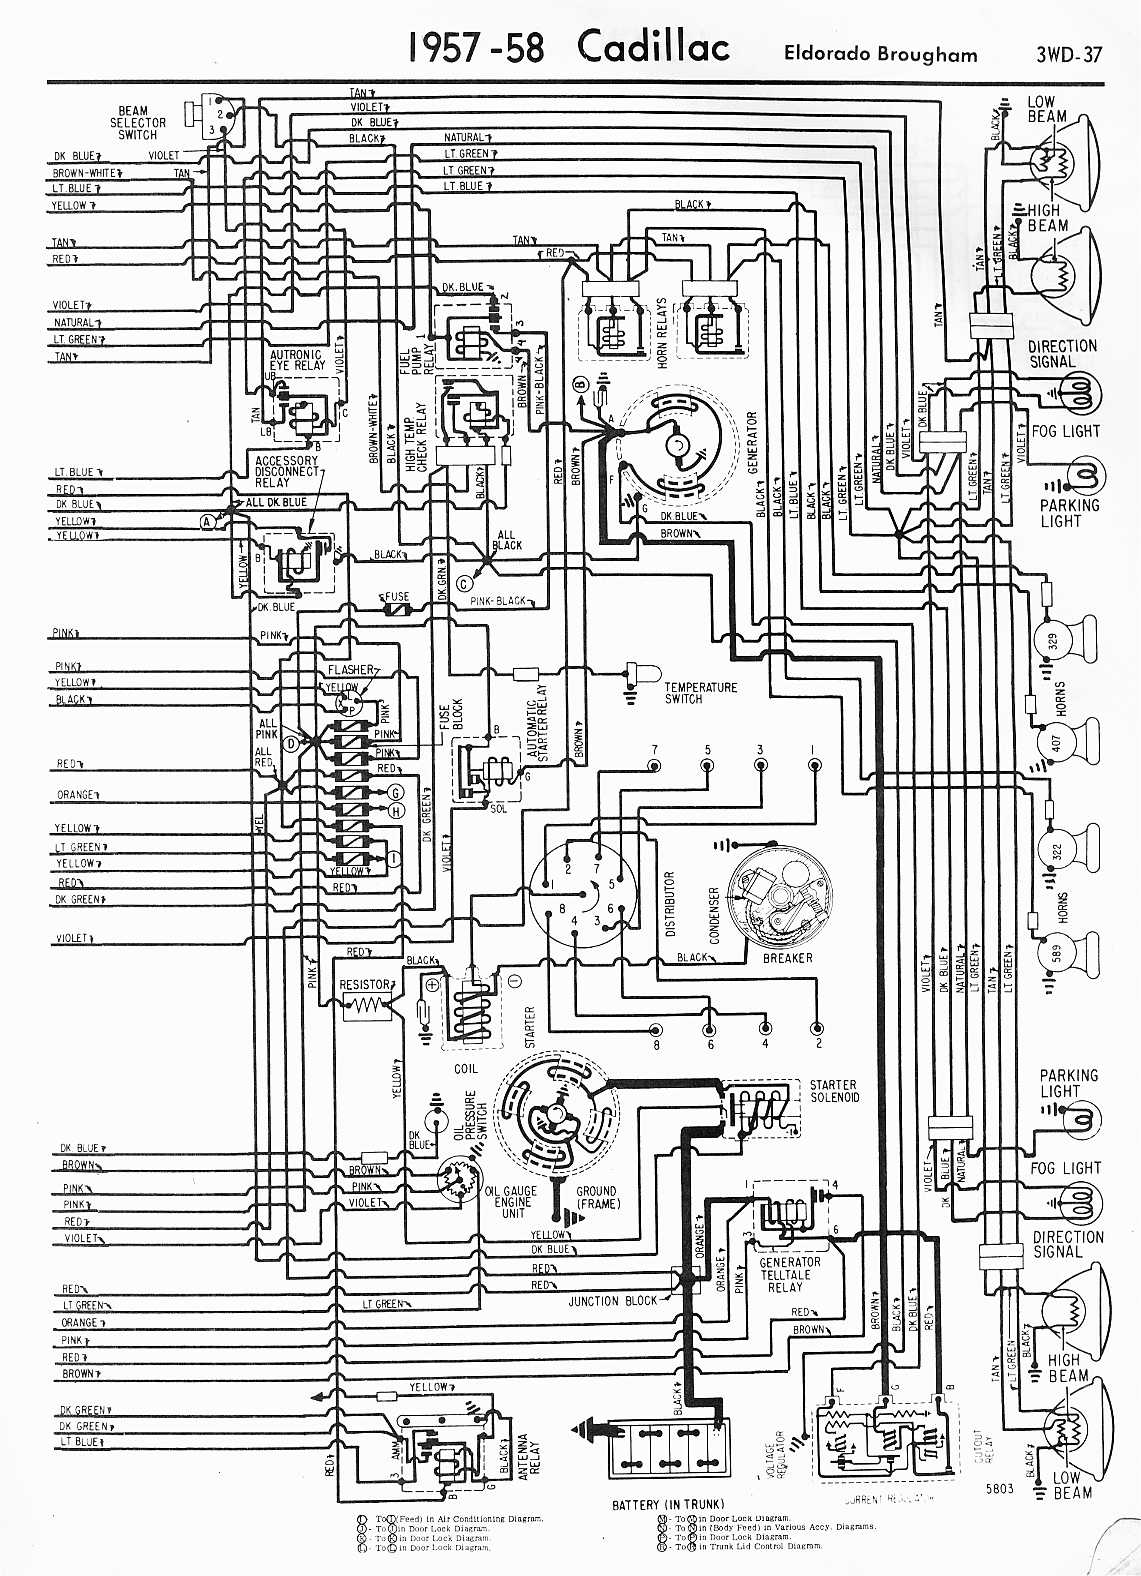 1956 Cadillac Wiring Diagram Diagrams Best Chevy Impala 1957 1965 1968 Bel Air